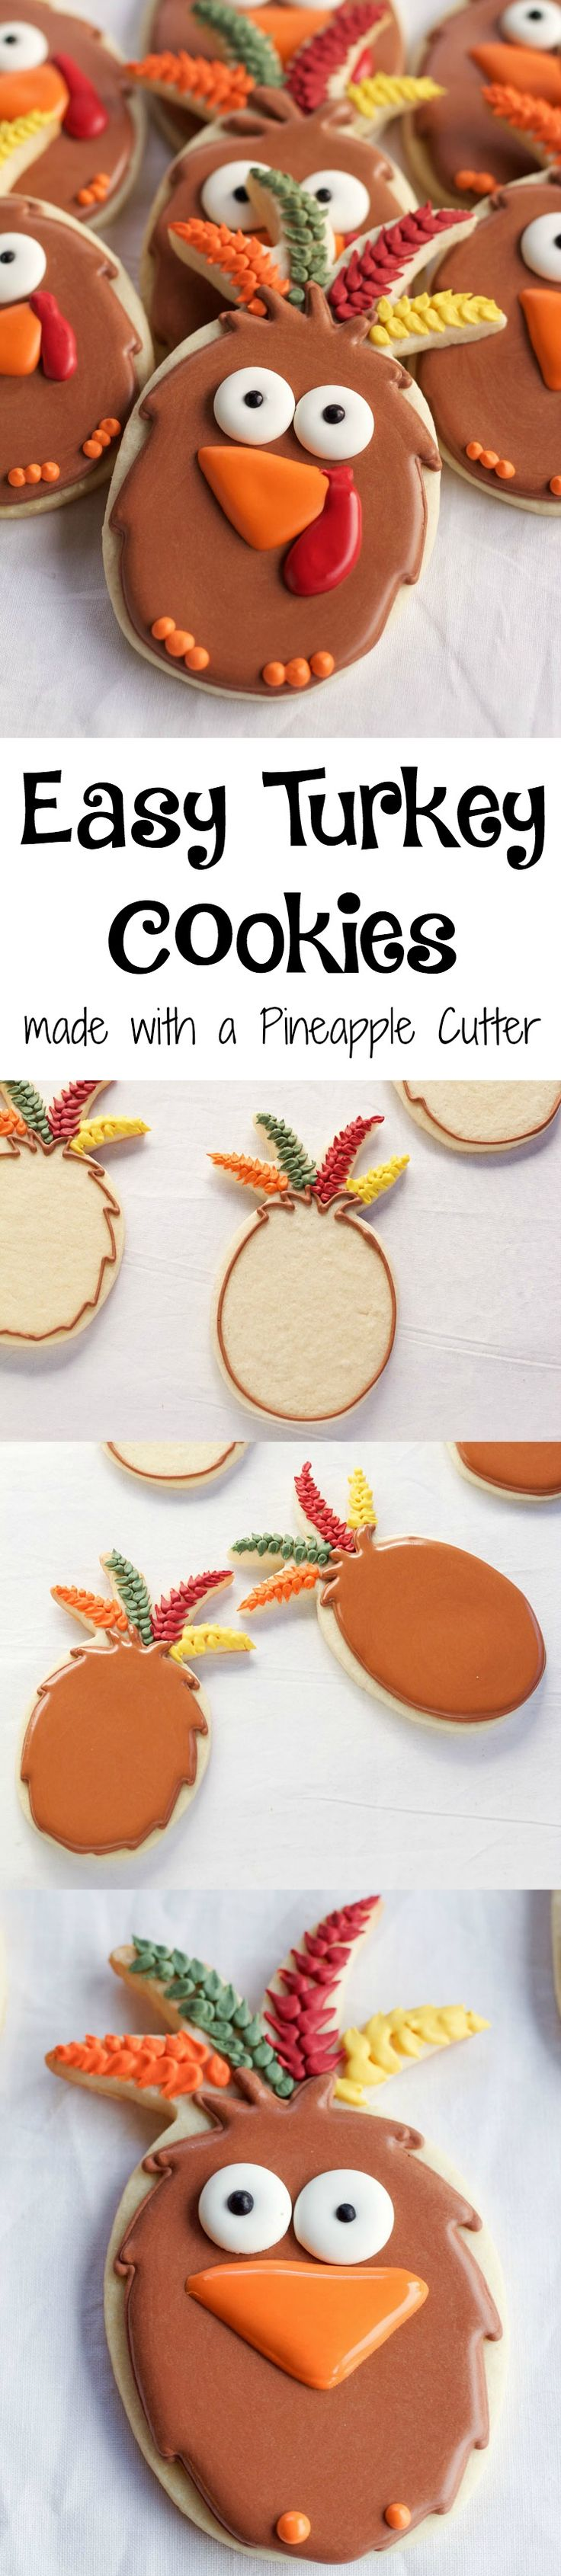 Easy Turkey Cookies made with a Pineapple Cookie Cutter | The Bearfoot Baker